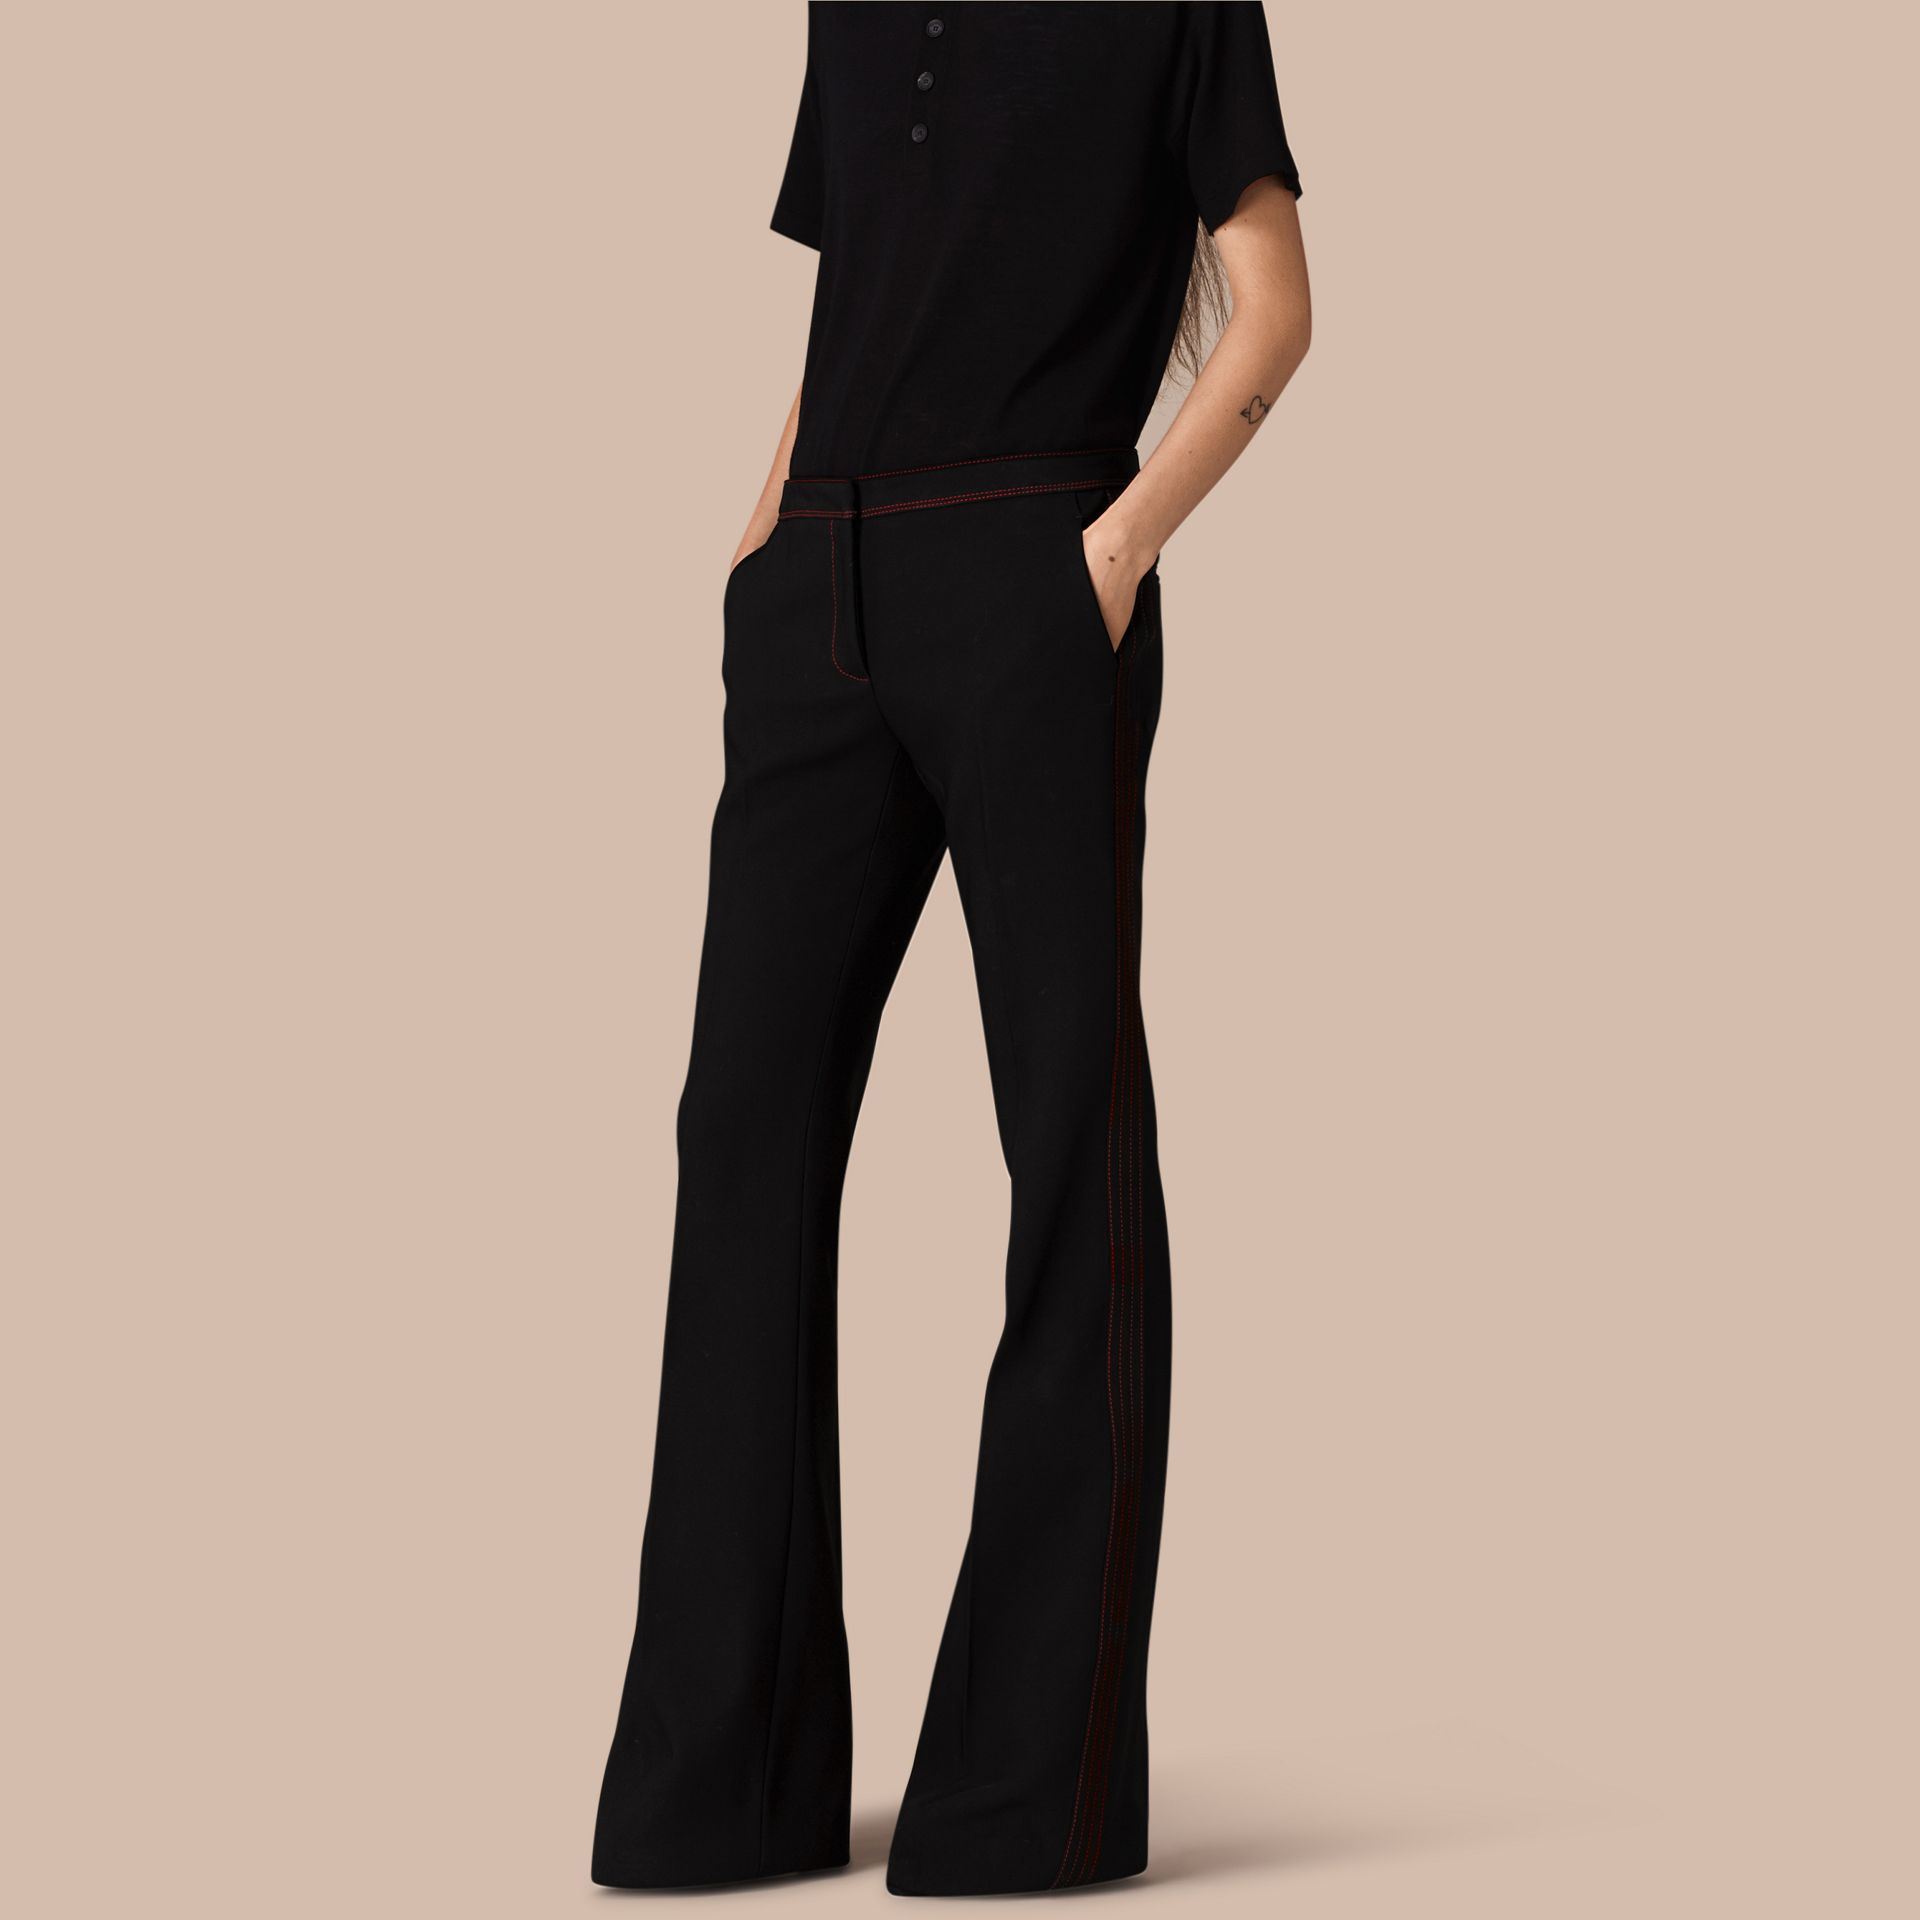 Black Stretch Boot-cut Trousers - gallery image 1